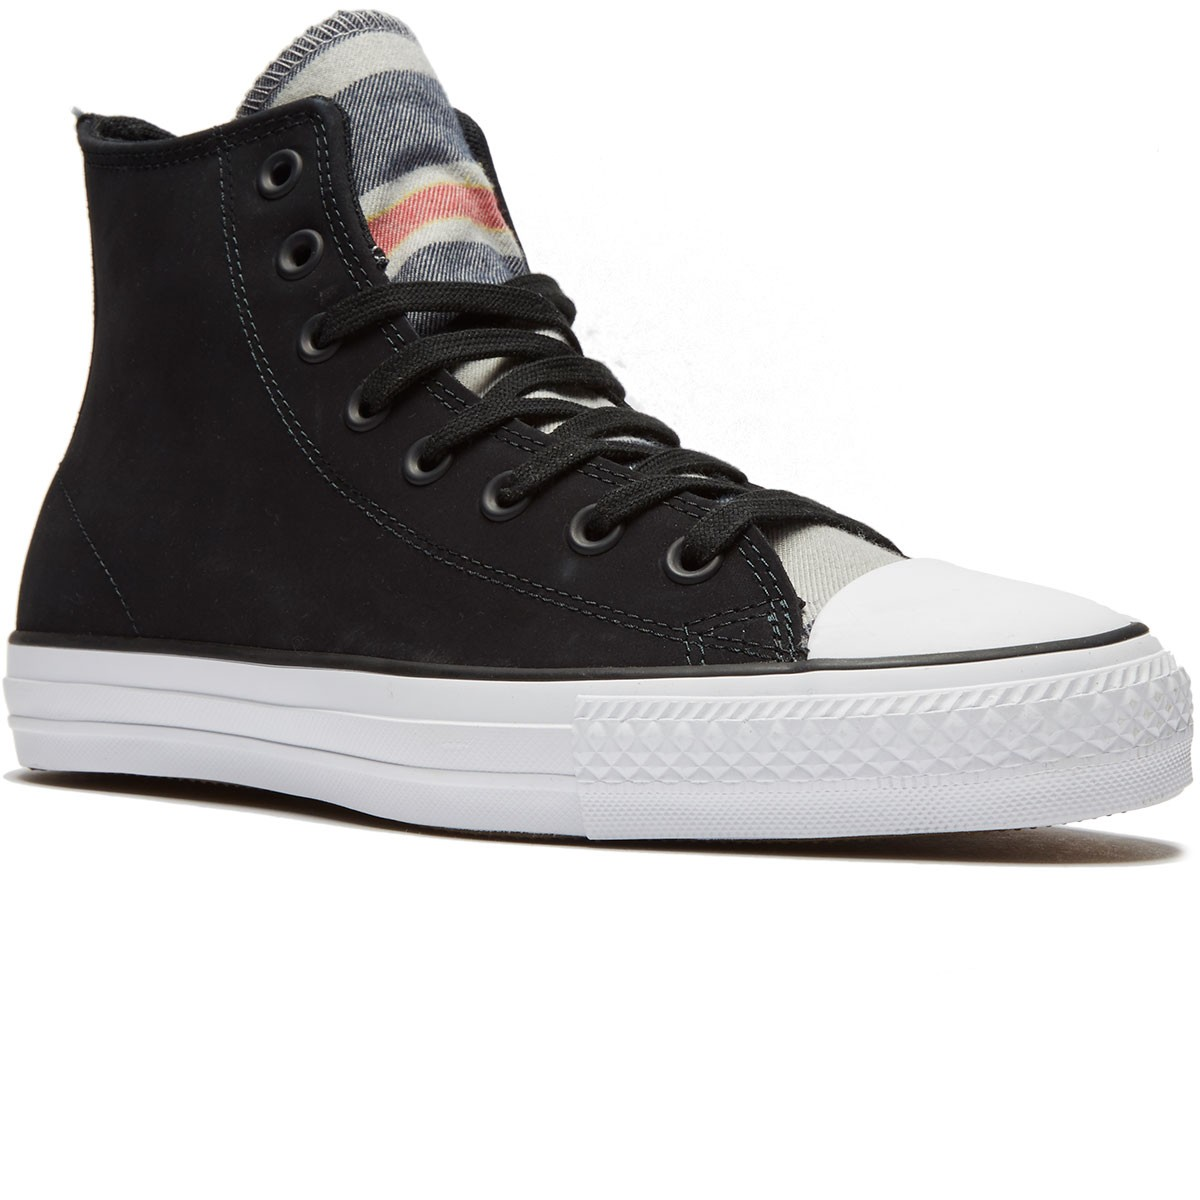 c98325a34bc03b Converse CTAS Pro Blanket Stripe Shoes - Black White Black - 8.0